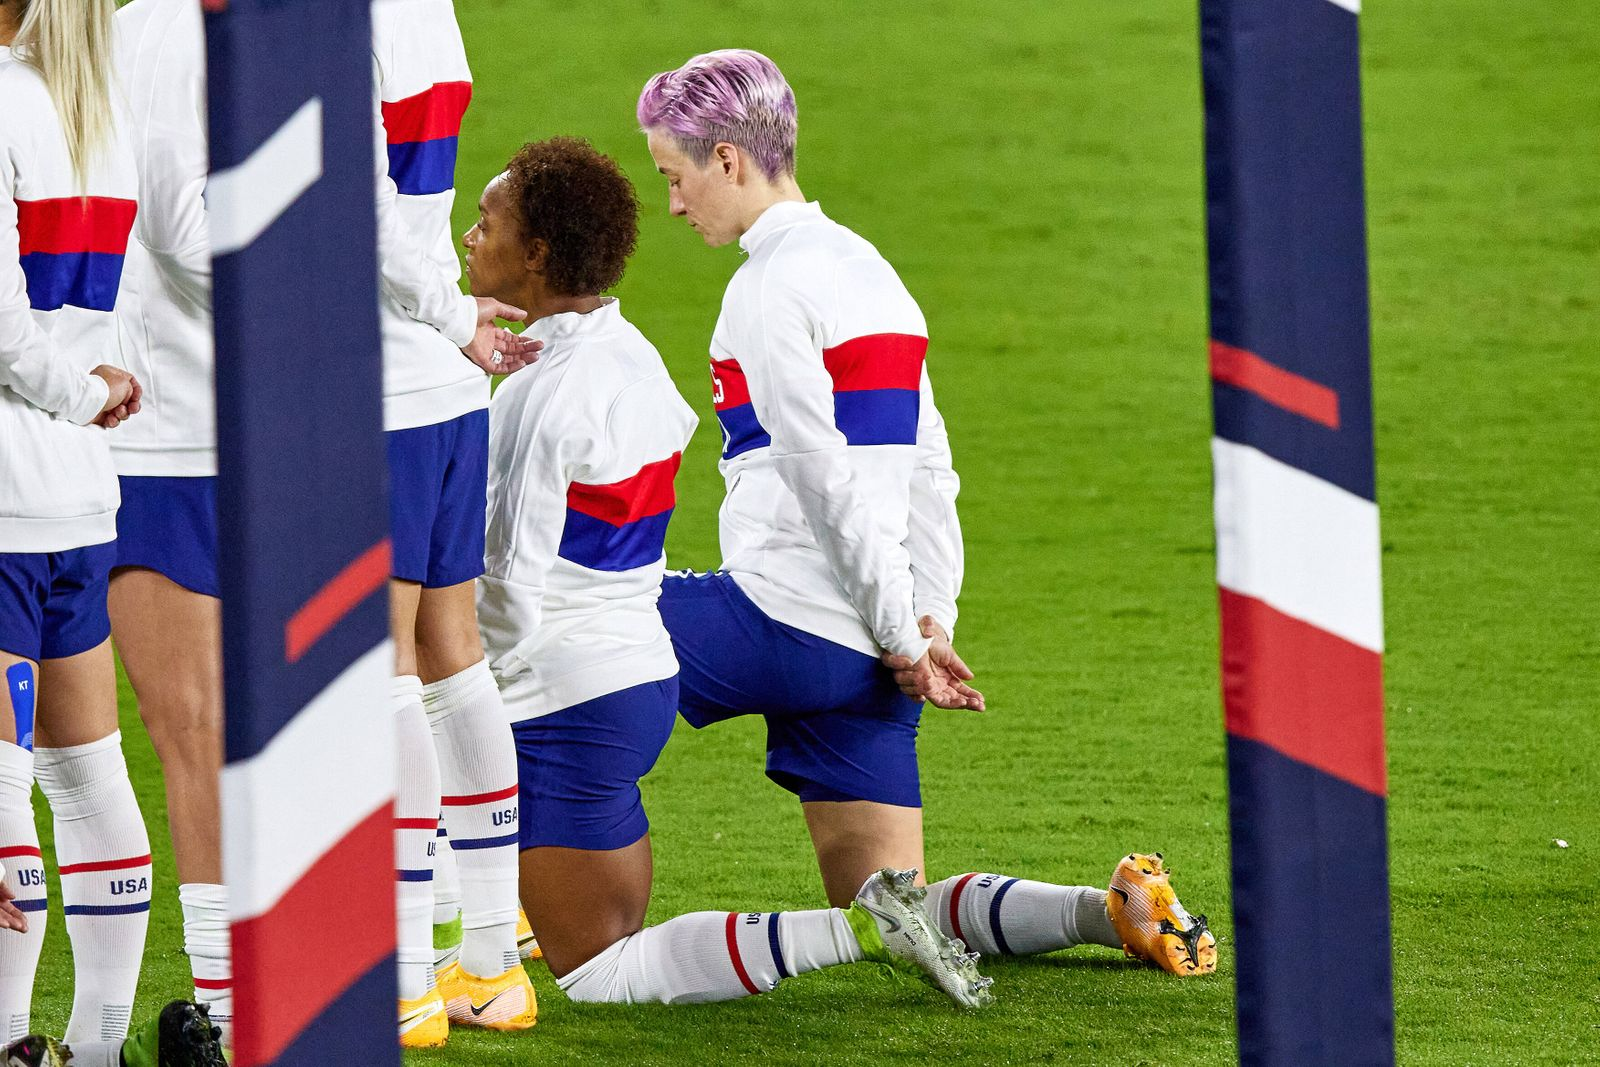 ORLANDO, FL - JANUARY 18: Several United States players including United States forward Megan Rapinoe (15) and United St